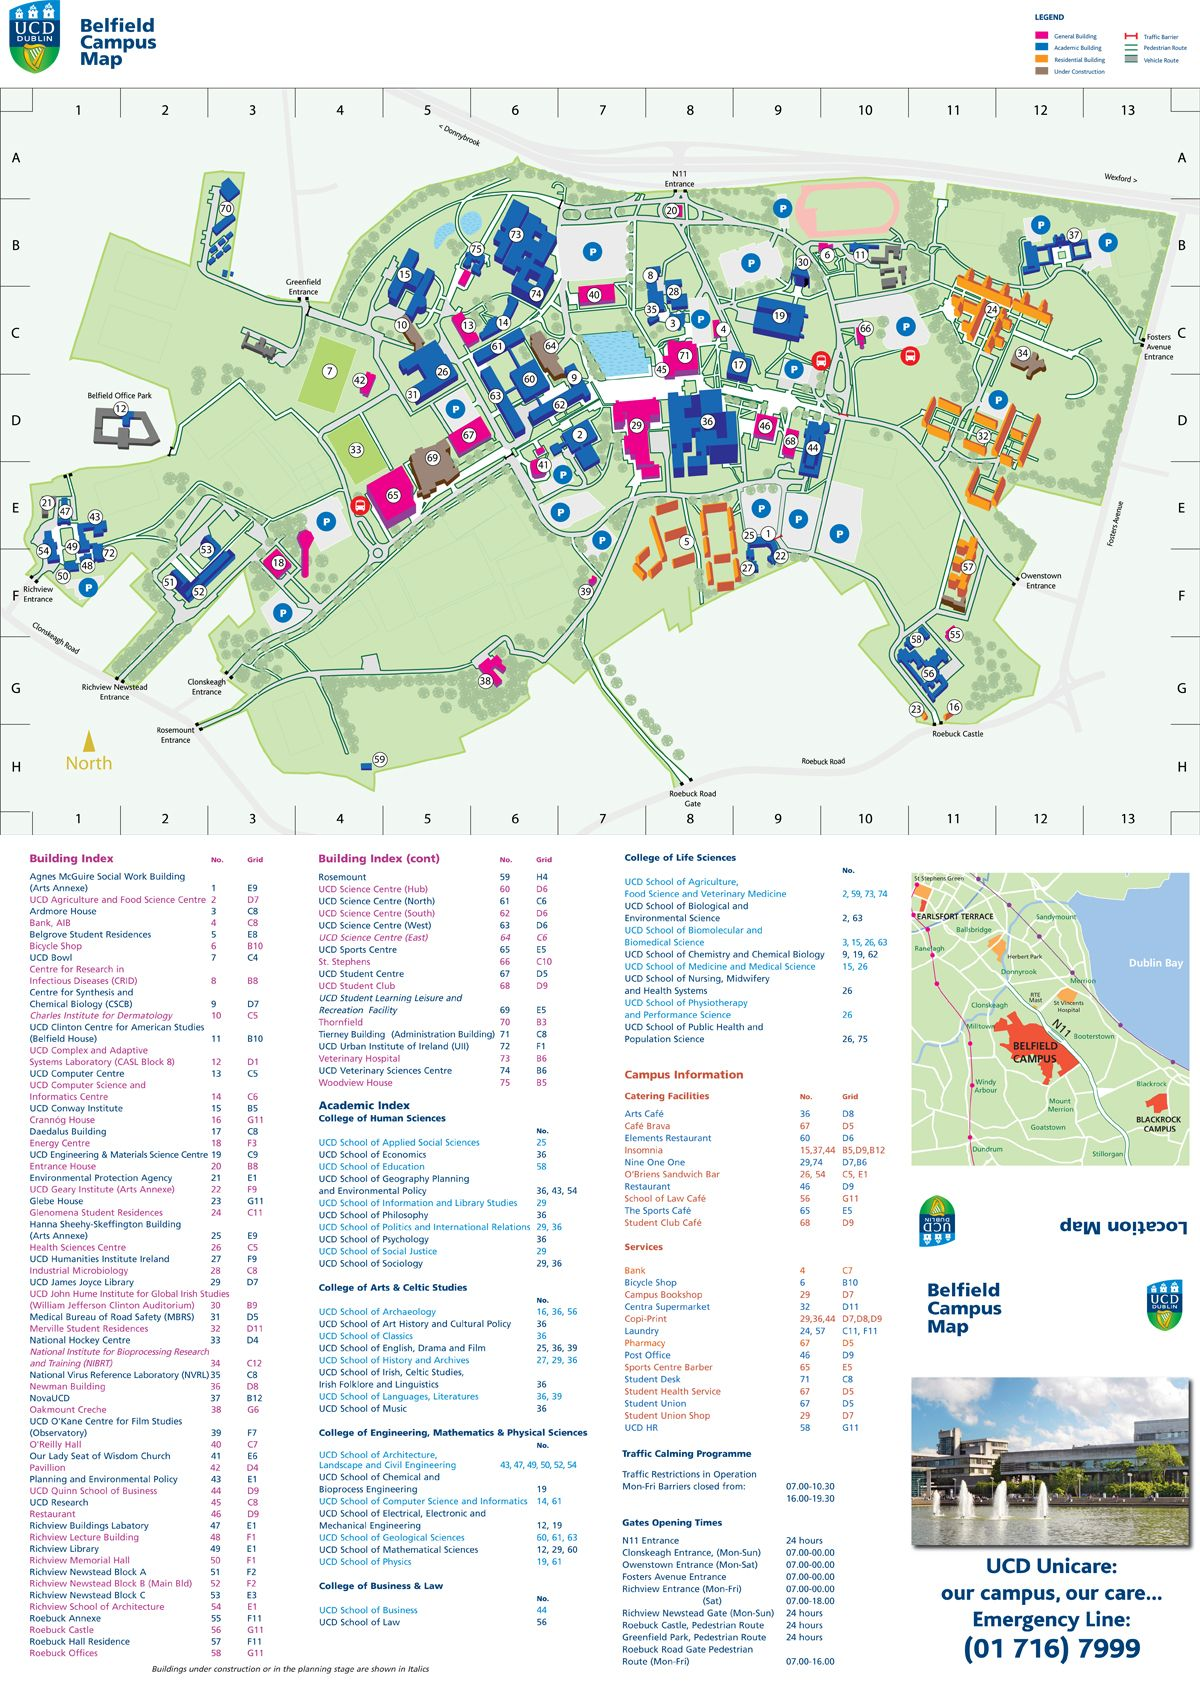 Mid Pacific Institute Campus Map.Ucd Belfield Campus Map Ireland Eire In 2019 Campus Map Map